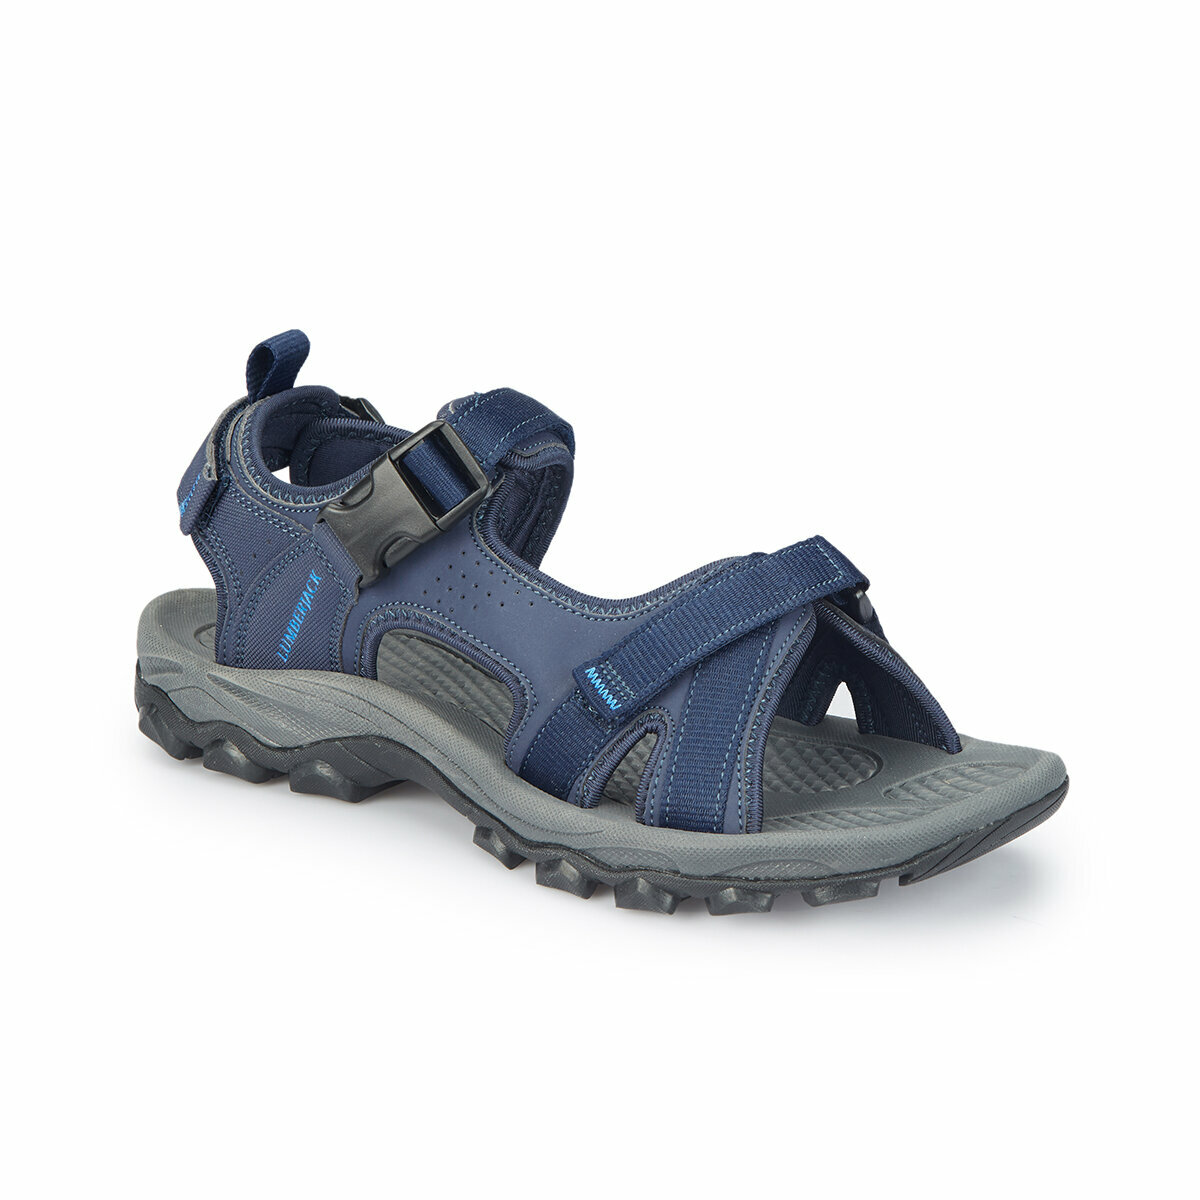 FLO LAGGUN Navy Blue Male Sandals LUMBERJACK